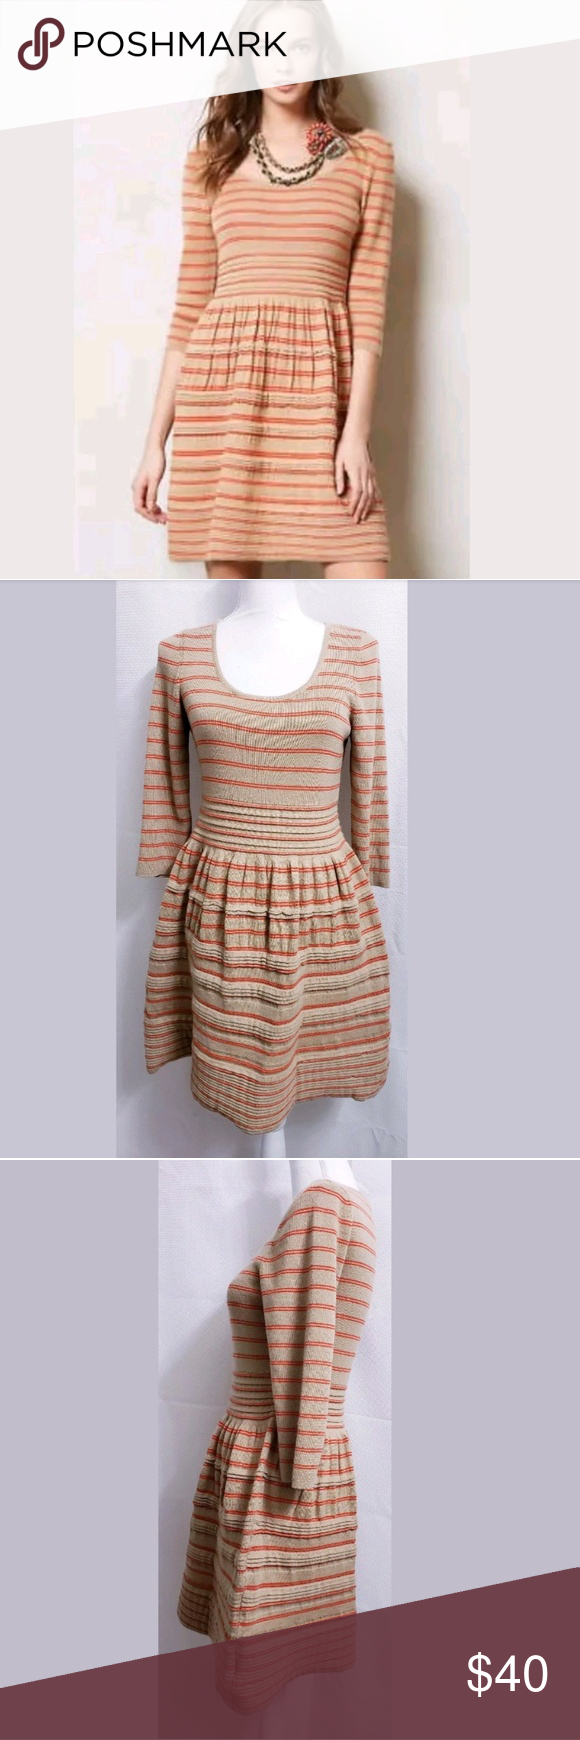 083745247d5 Knitted  amp  Knotted Elodie Striped Sweater Dress L This is a Knitted   amp  Knotted